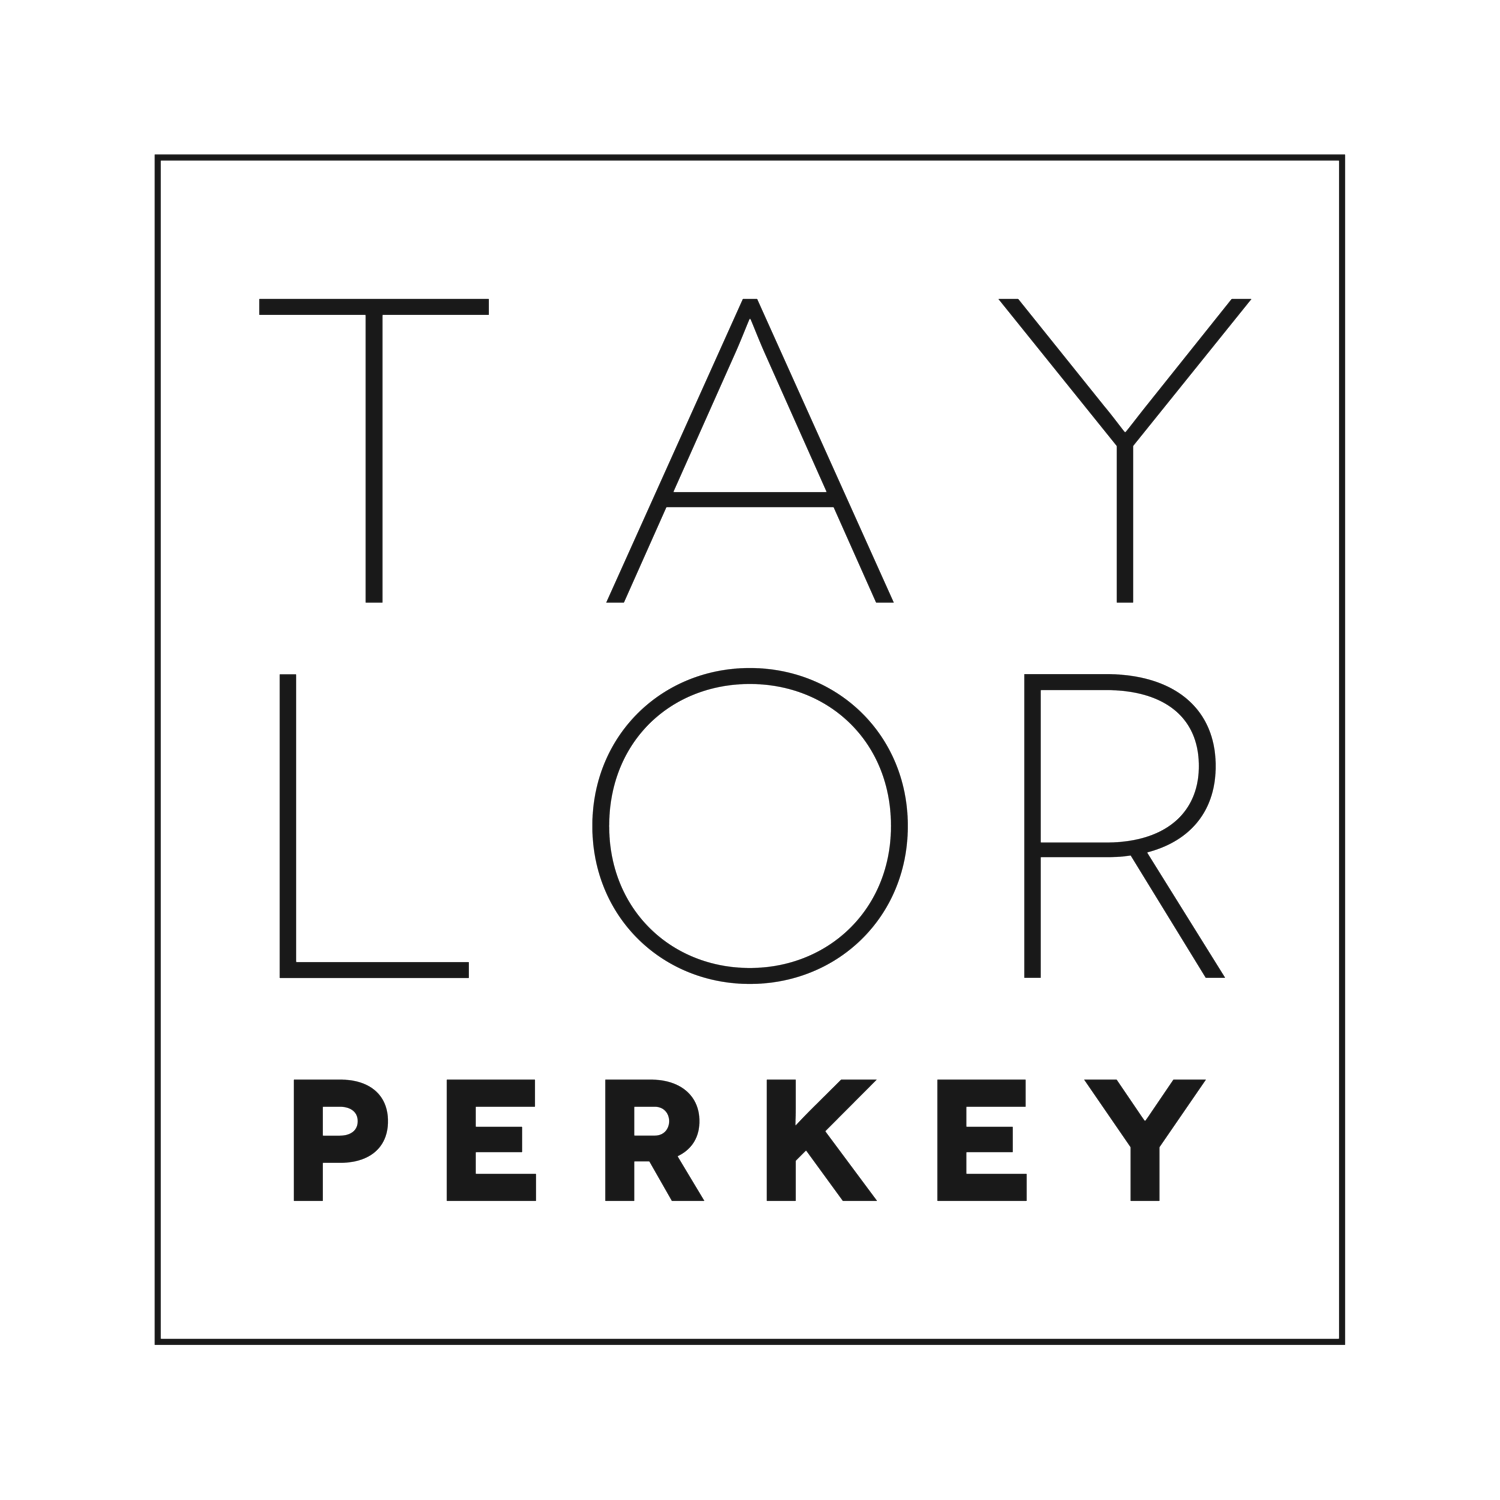 Taylor Perkey, LLC.